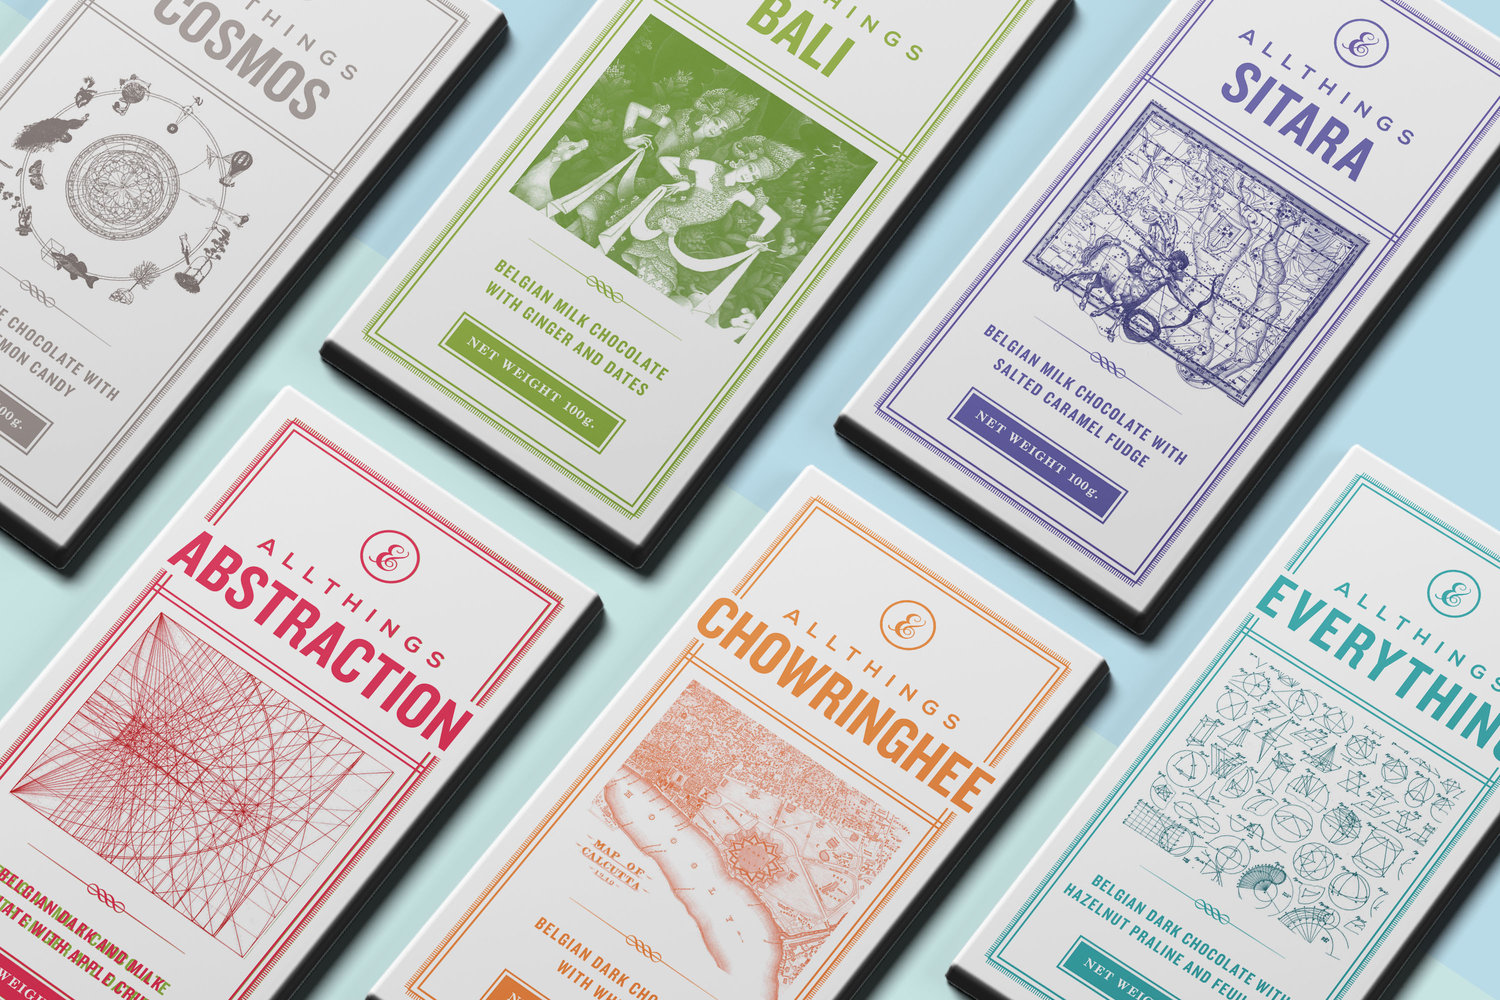 All Things Chocolate  Inspiration by Lewis Carroll's  Alice in Wonderland , newborn announcement, visual identity & chocolate packaging. ___  Entertainment / Food & Drink